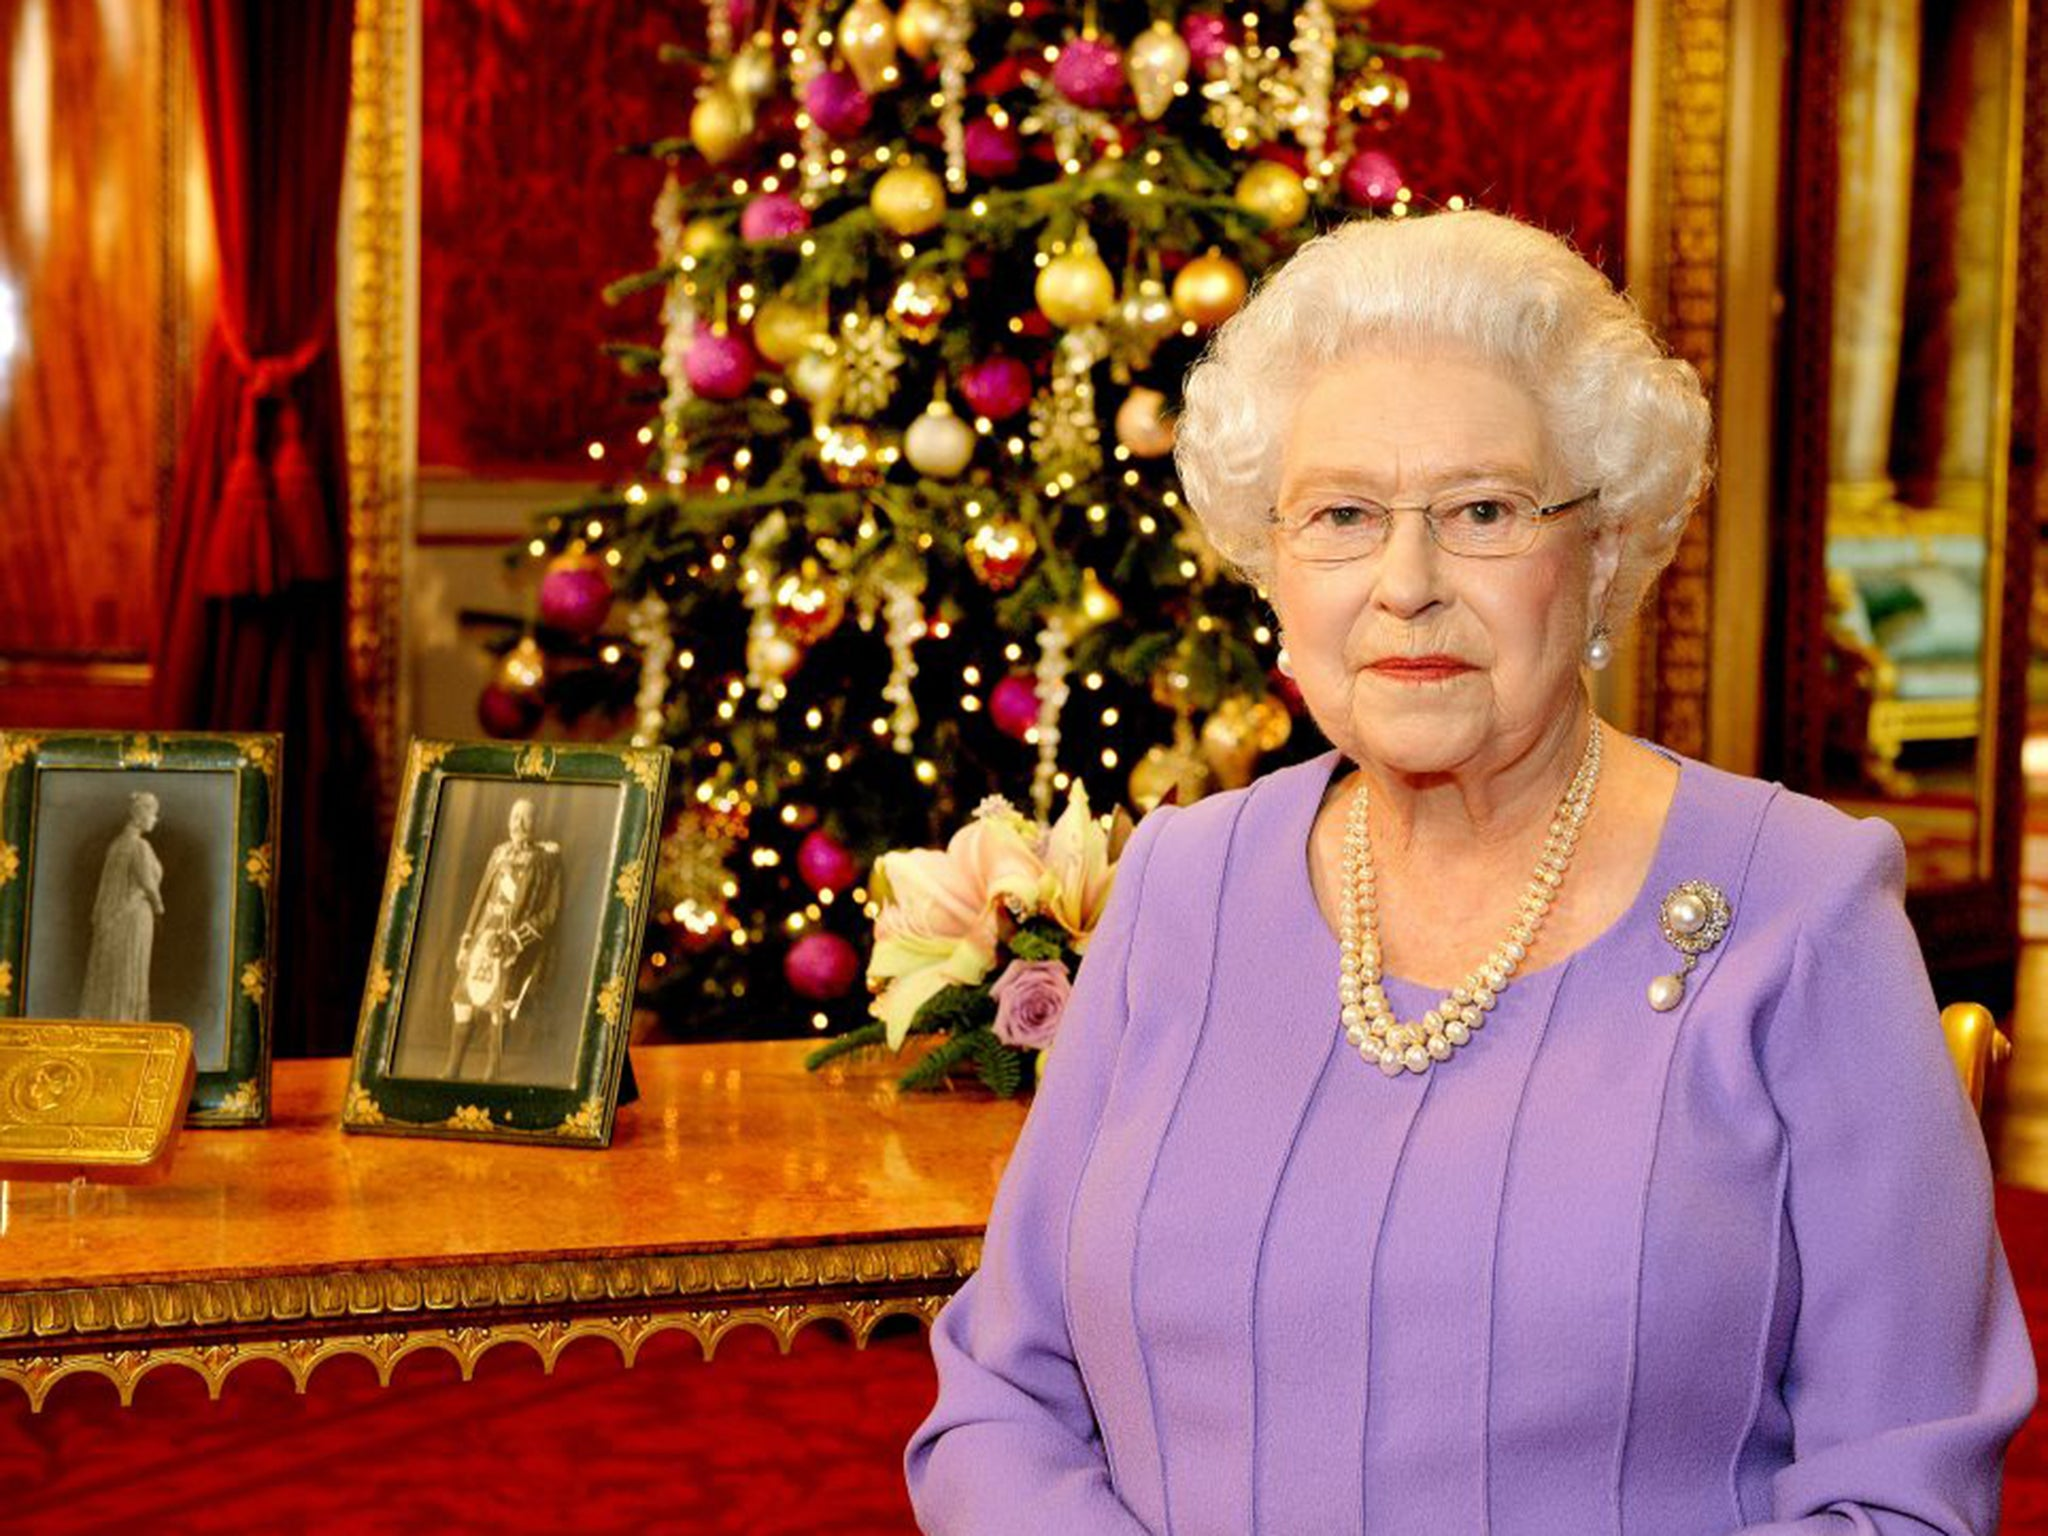 Decoding the Queen's speech: Was Her Majesty taking a swipe at ...